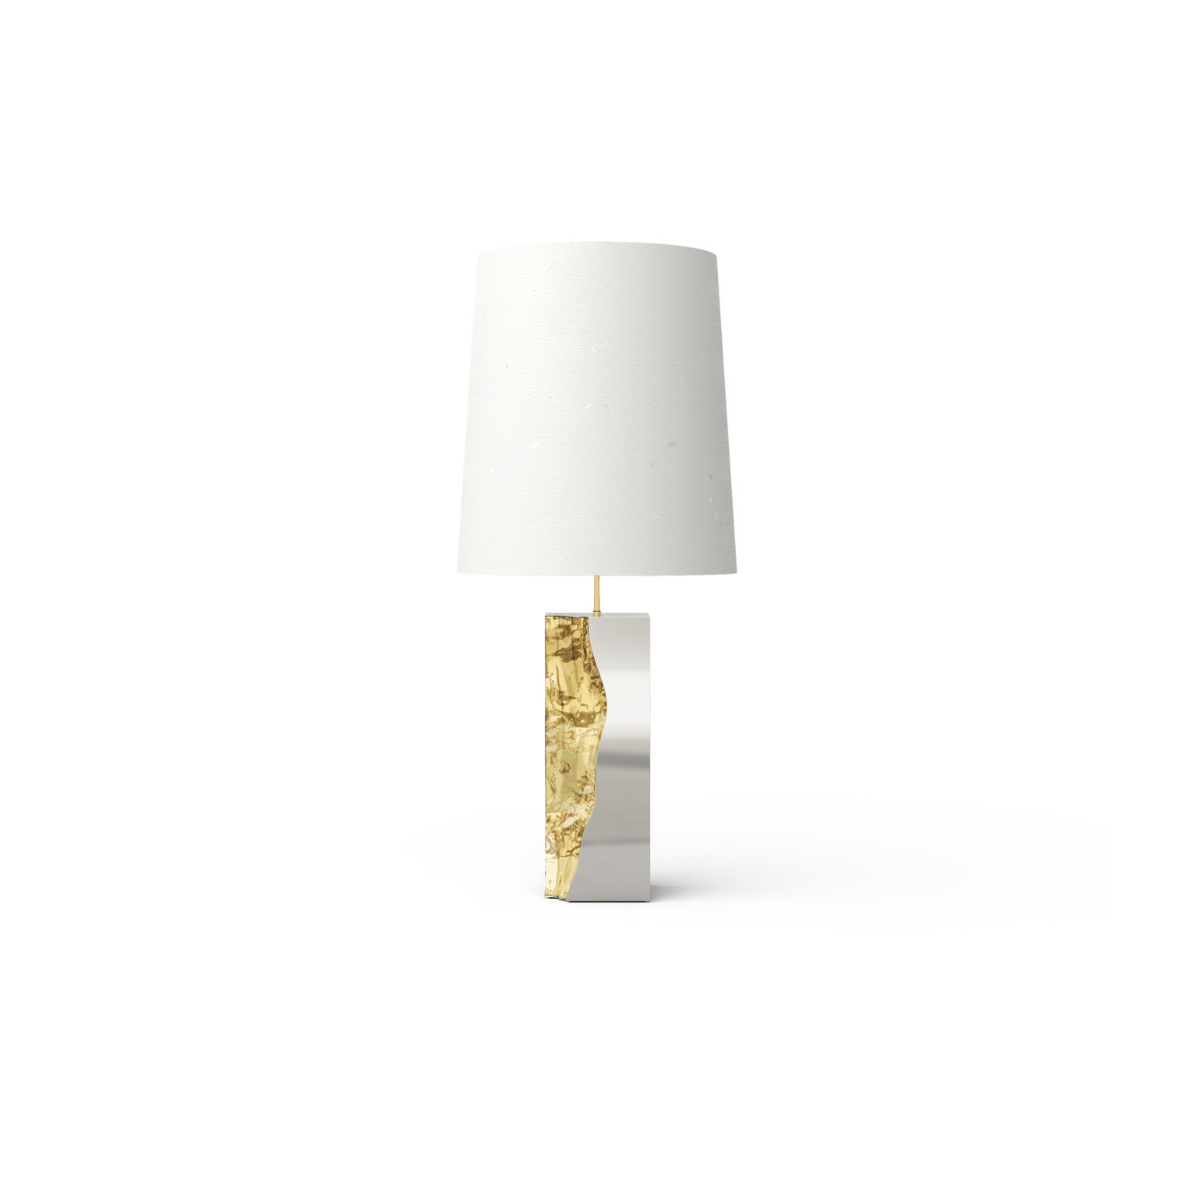 Lapiaz Table Lamp by Boca do Lobo Covet Lighting